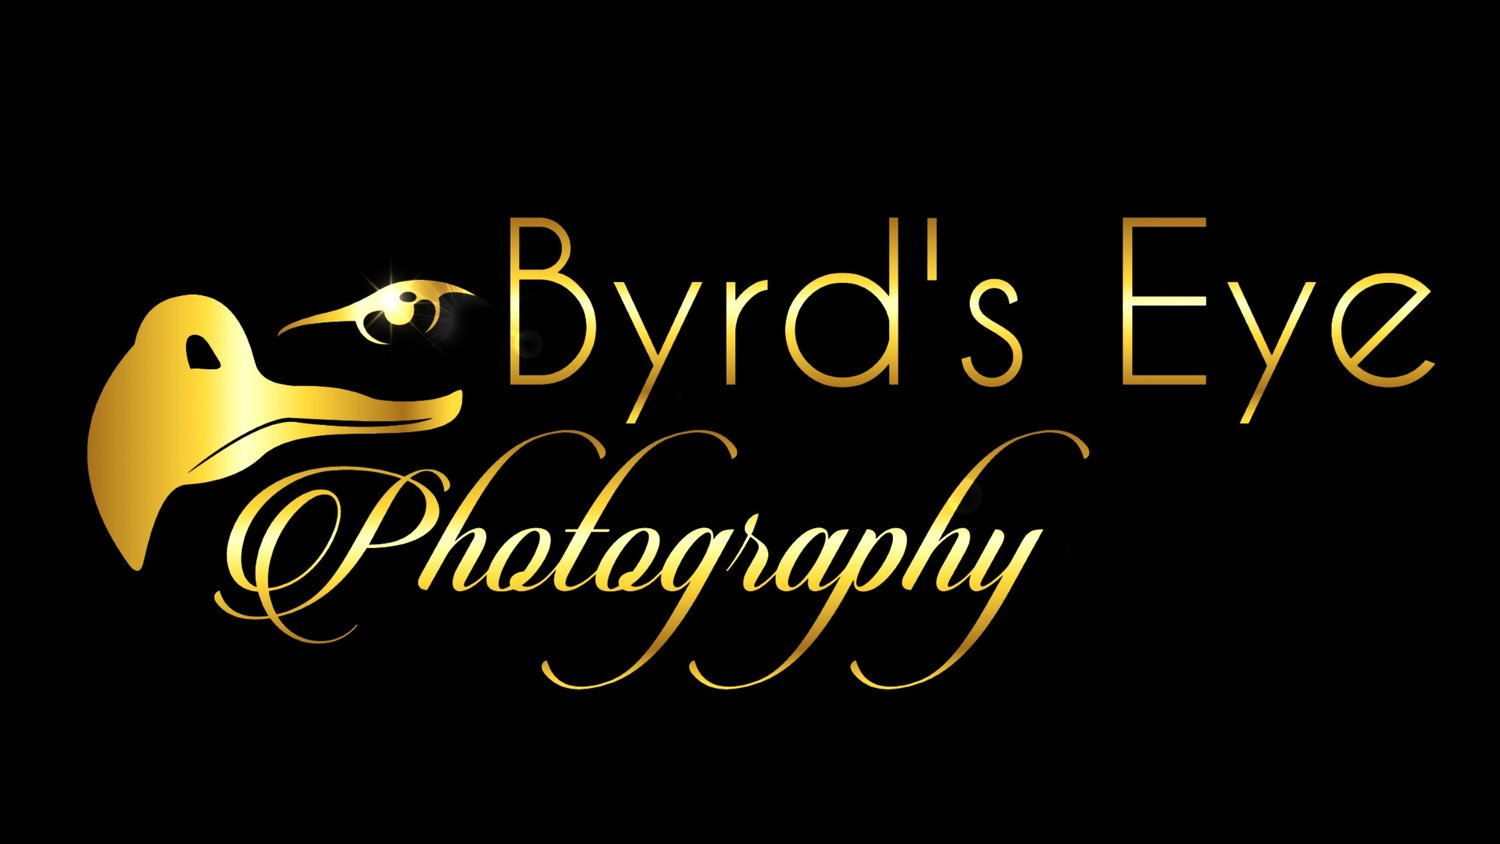 Byrds Eye Photography LLC